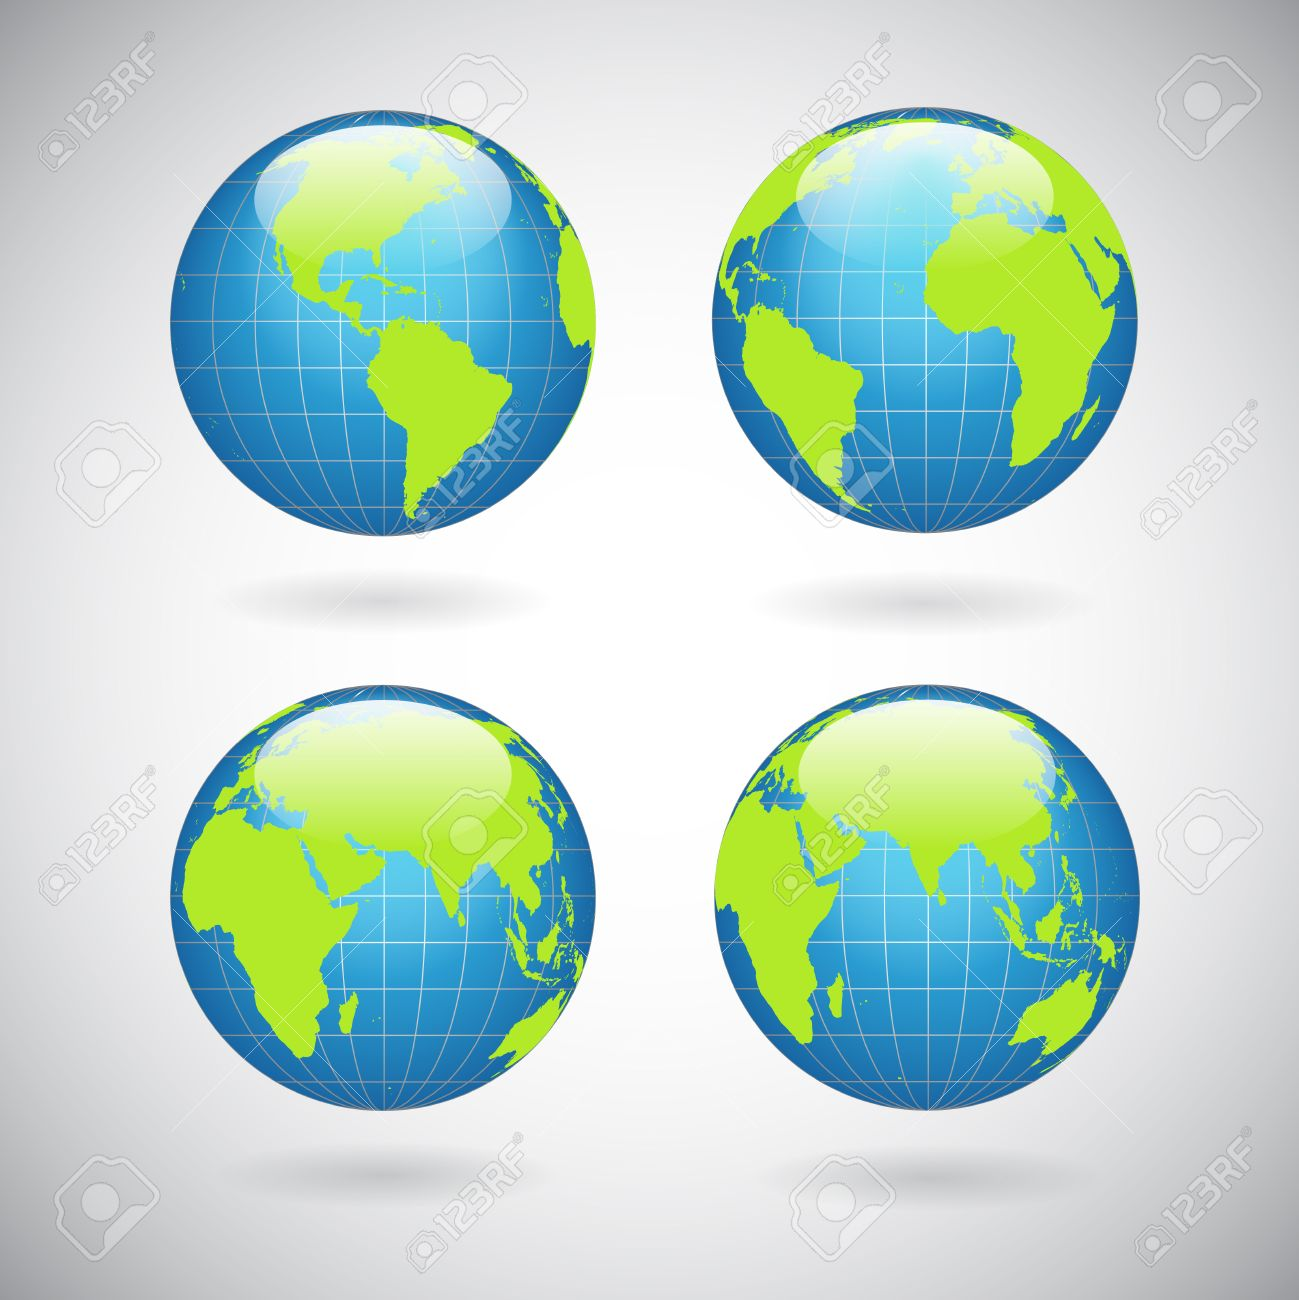 Earth globe icons set with world map continents and oceans isolated earth globe icons set with world map continents and oceans isolated vector illustration foto de archivo gumiabroncs Gallery